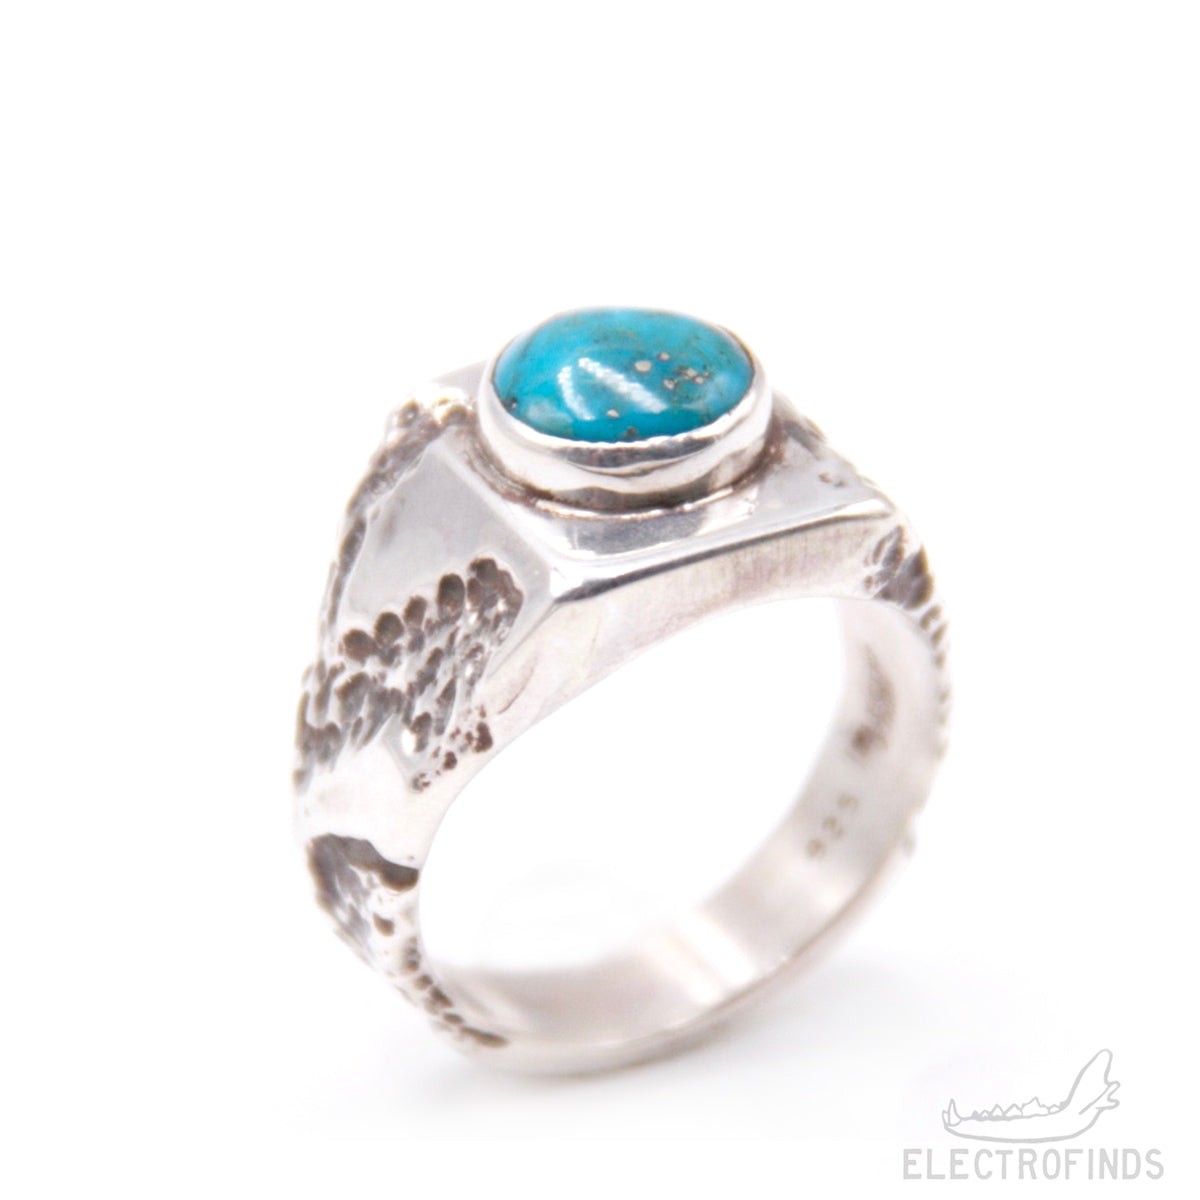 Turquoise Rubble Signet Ring